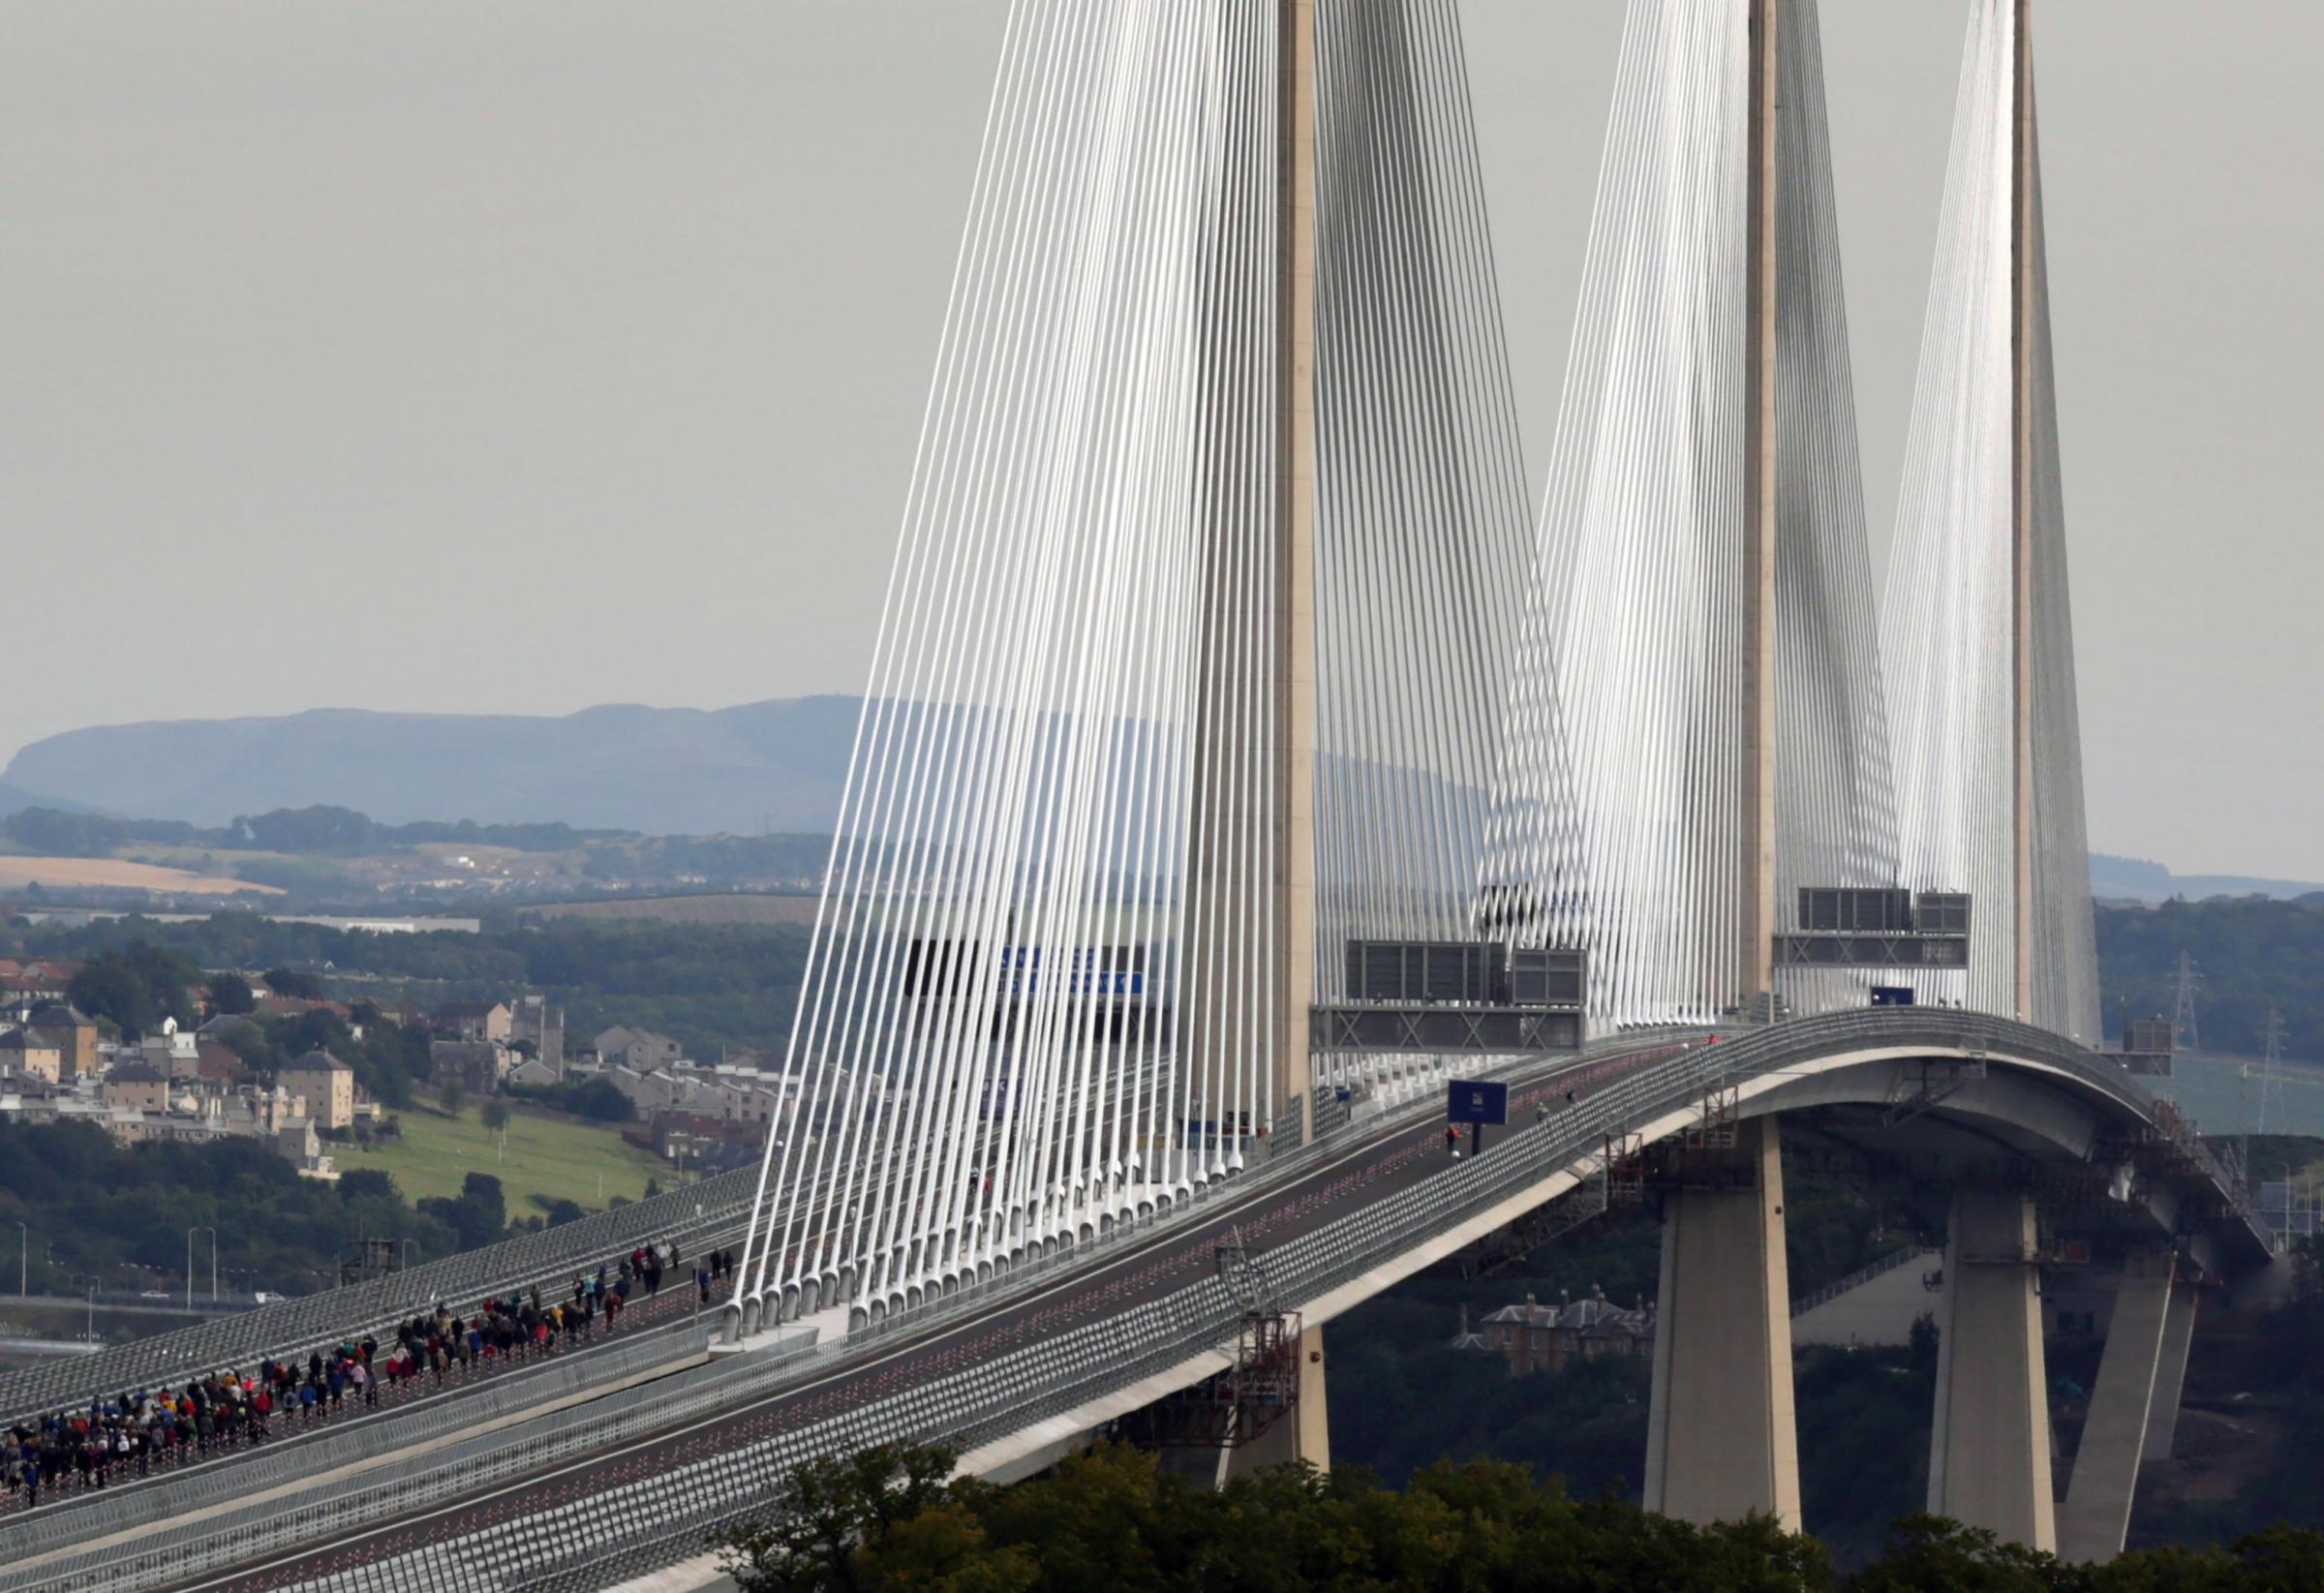 Competition winners walked across the Queensferry Crossing over the weekend, ahead of the official opening